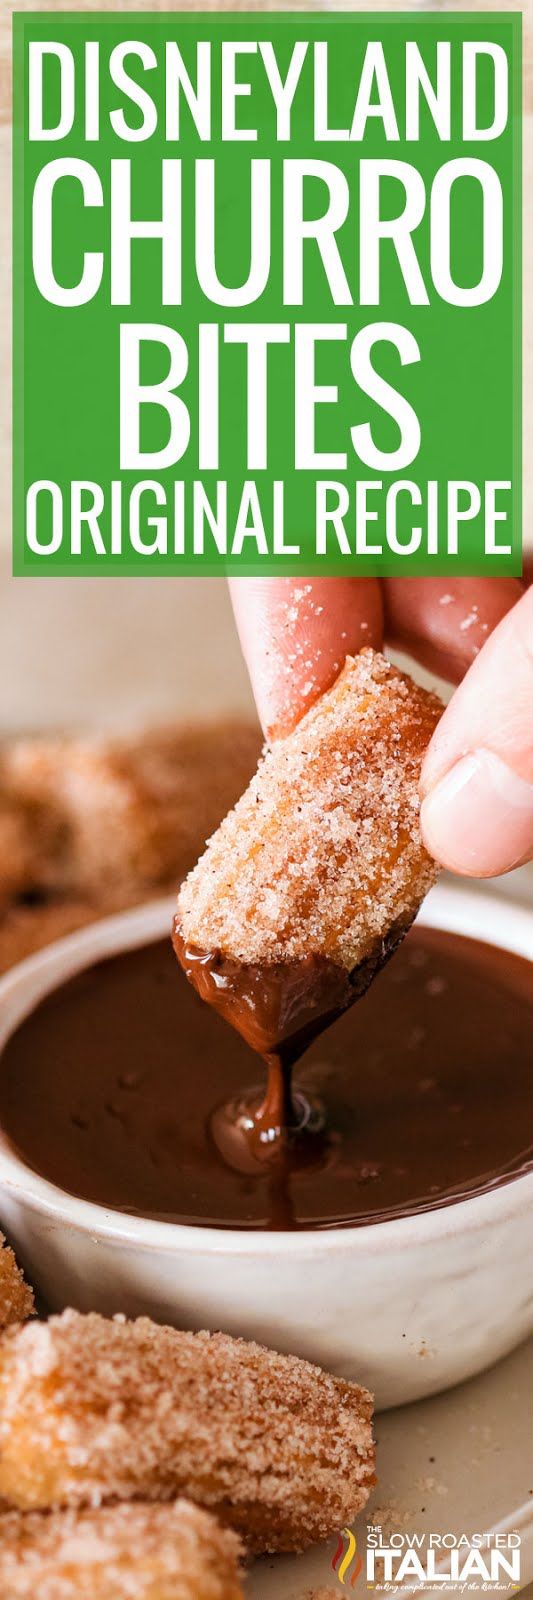 Churros Recipe from Disney Parks (Churro Bites)